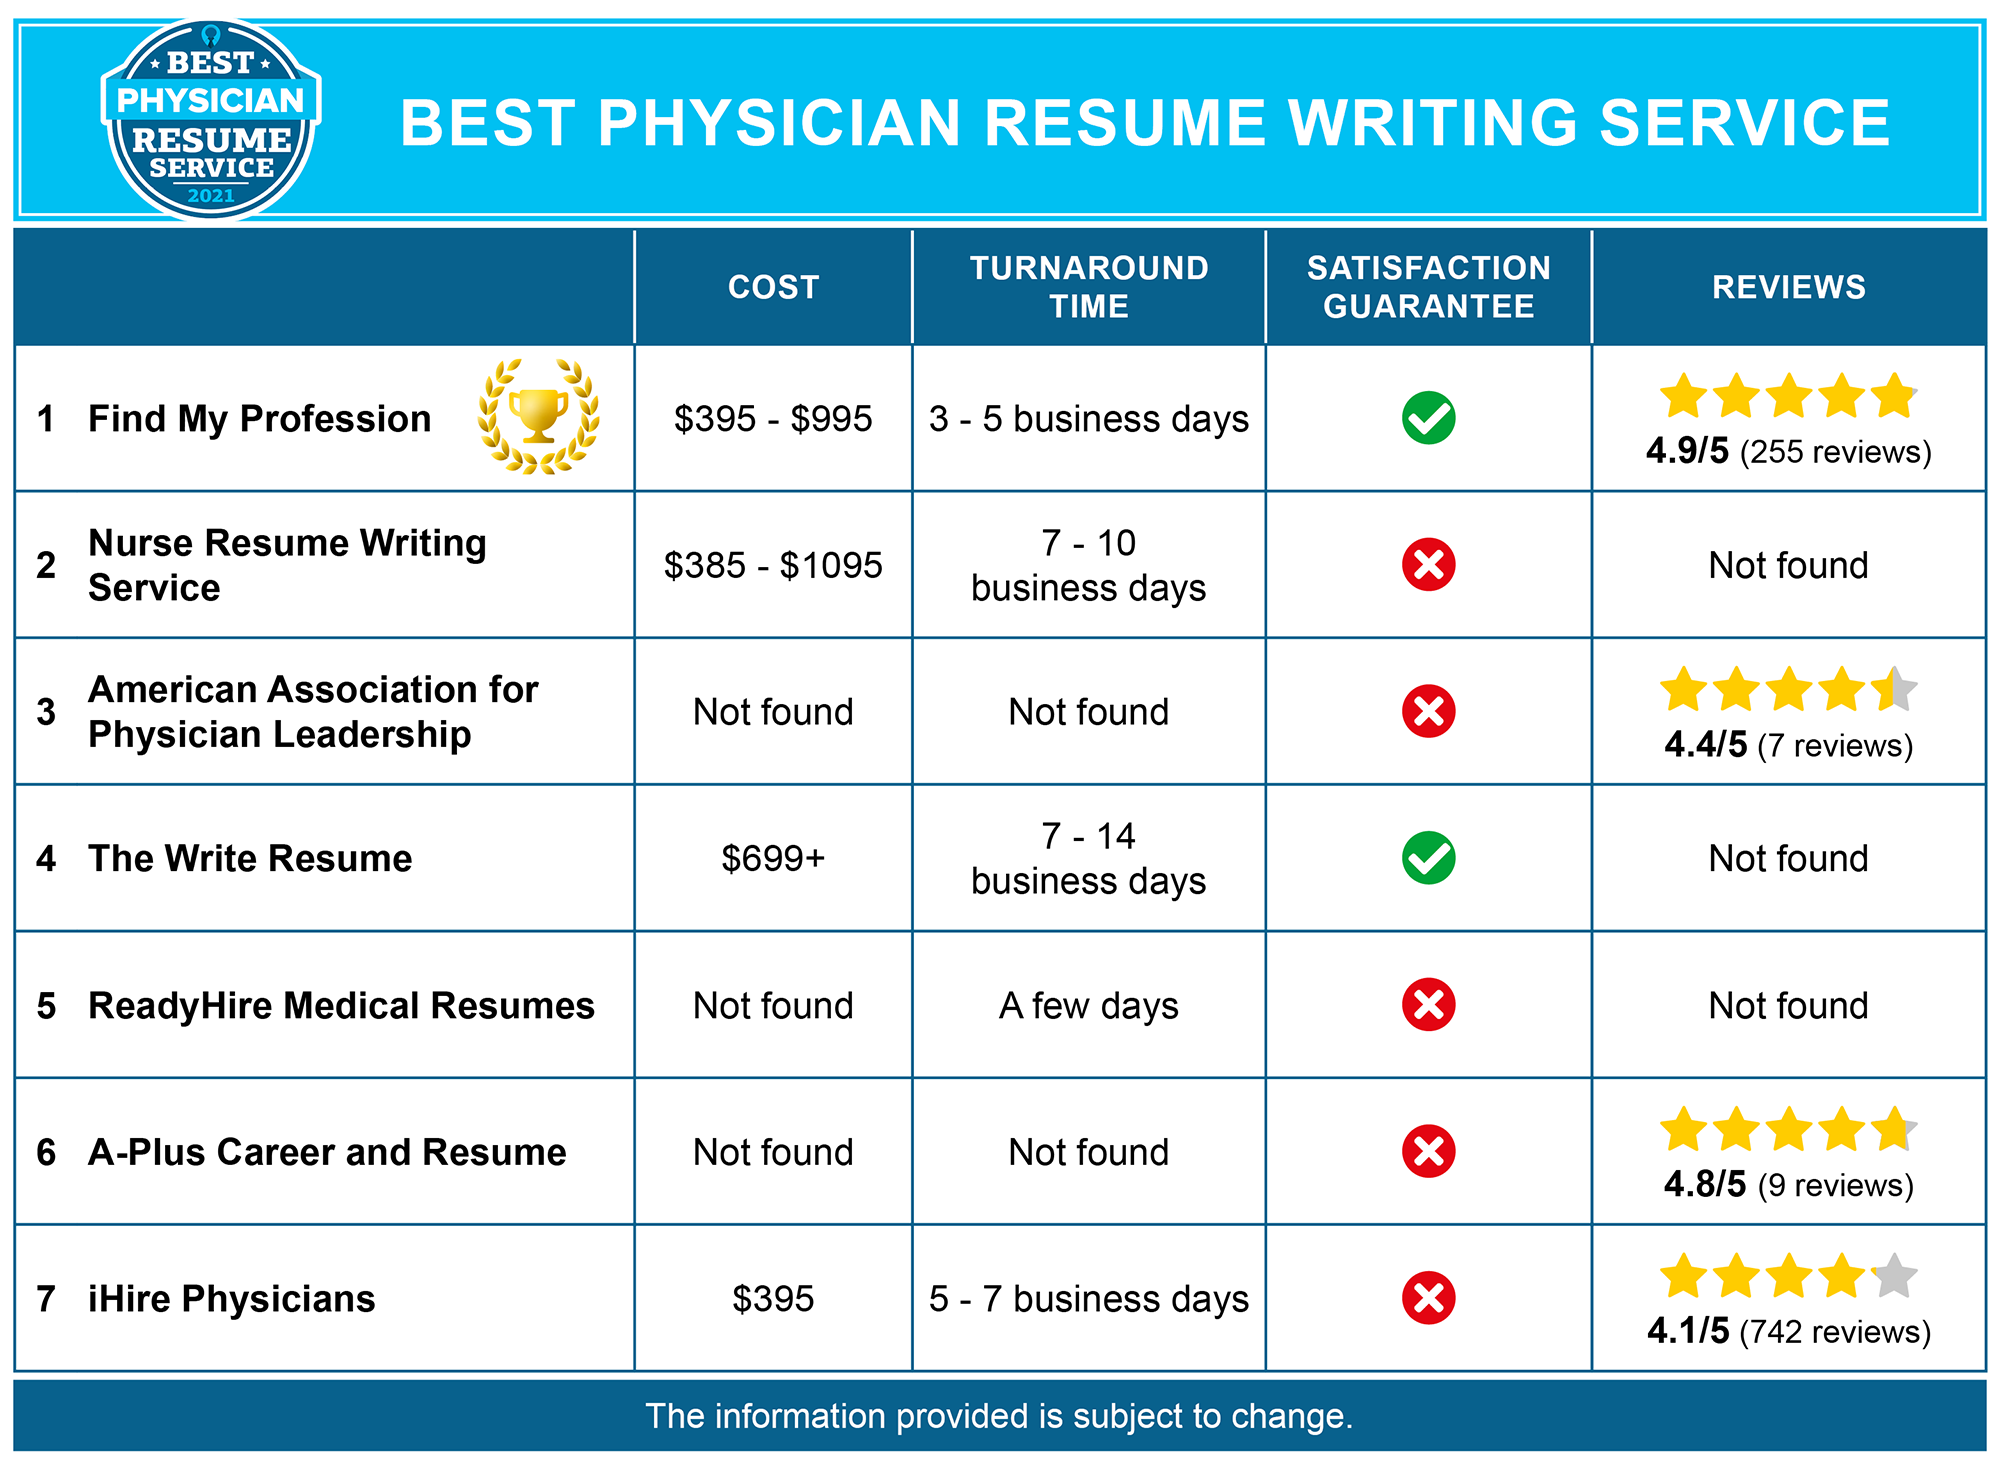 Best Physician Resume Writing Services